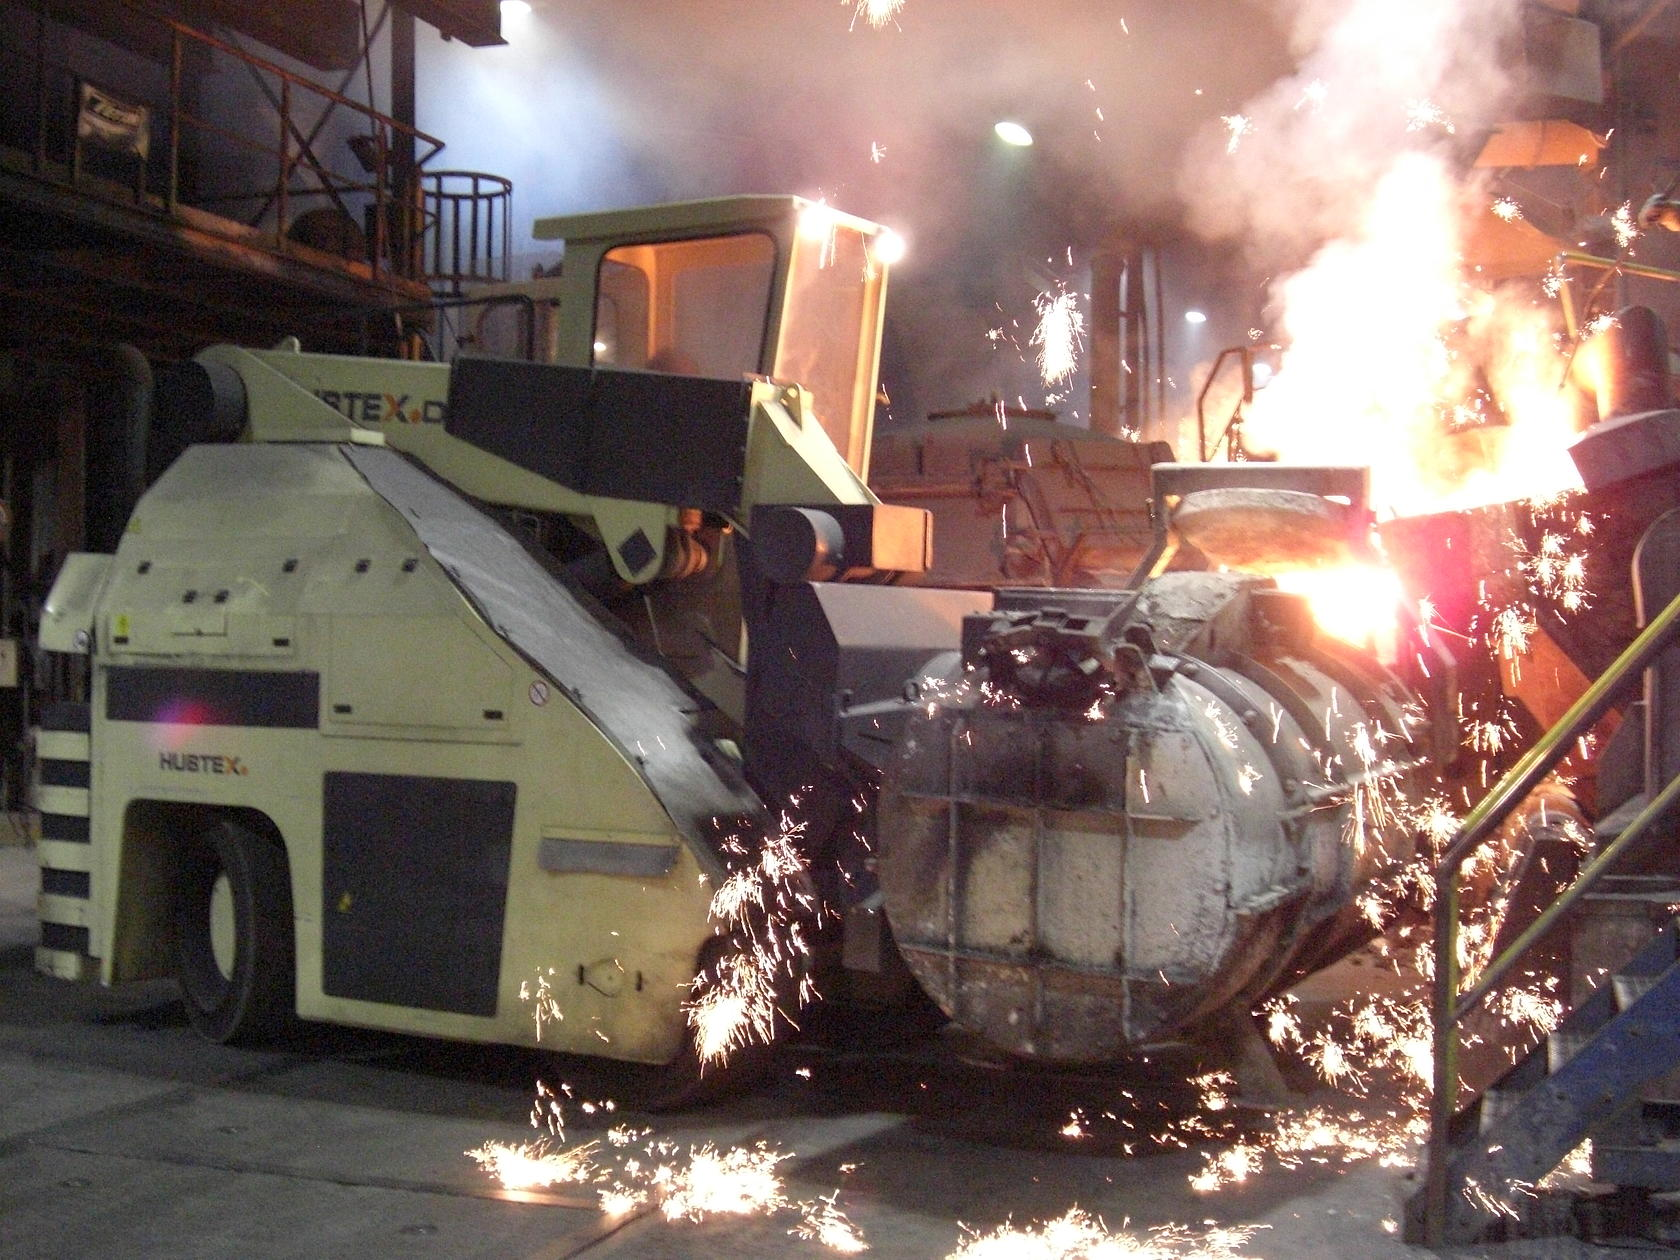 HUBTEX heavy-duty compact frontlift operating in the high temperatures of the foundry